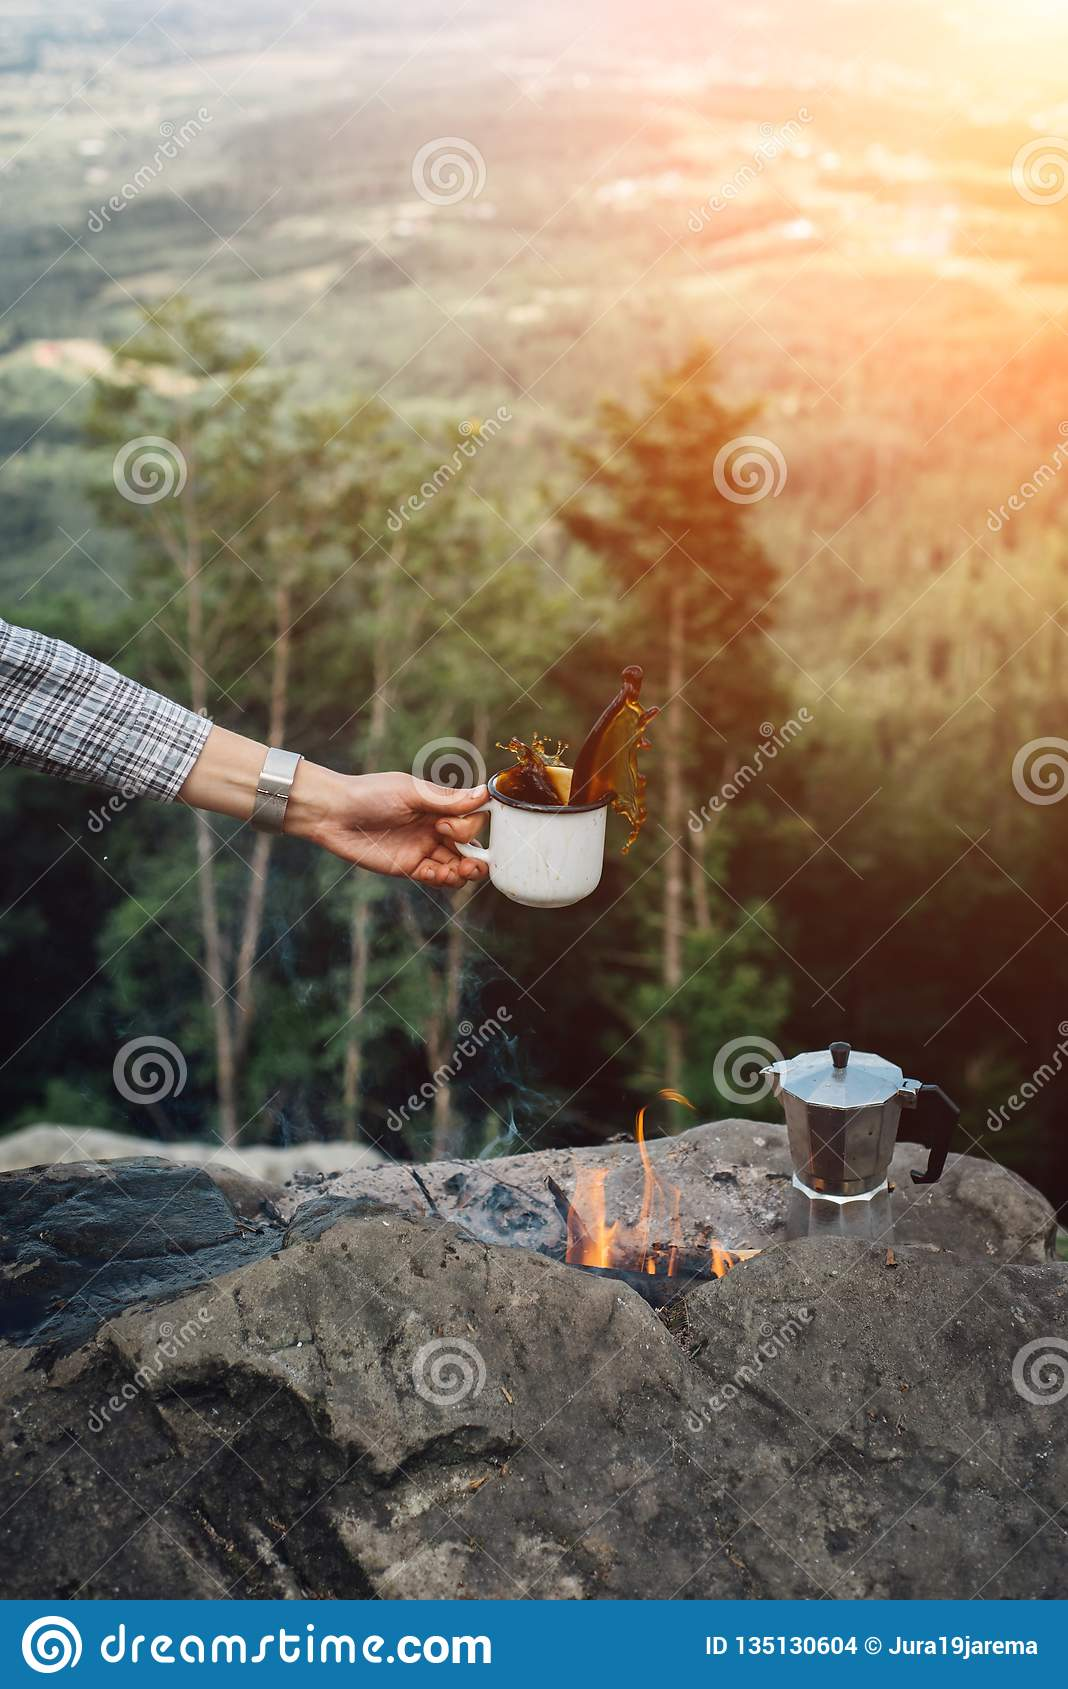 Girls hand holds a hot cup of coffee near the campfire on background of nature during the sunset